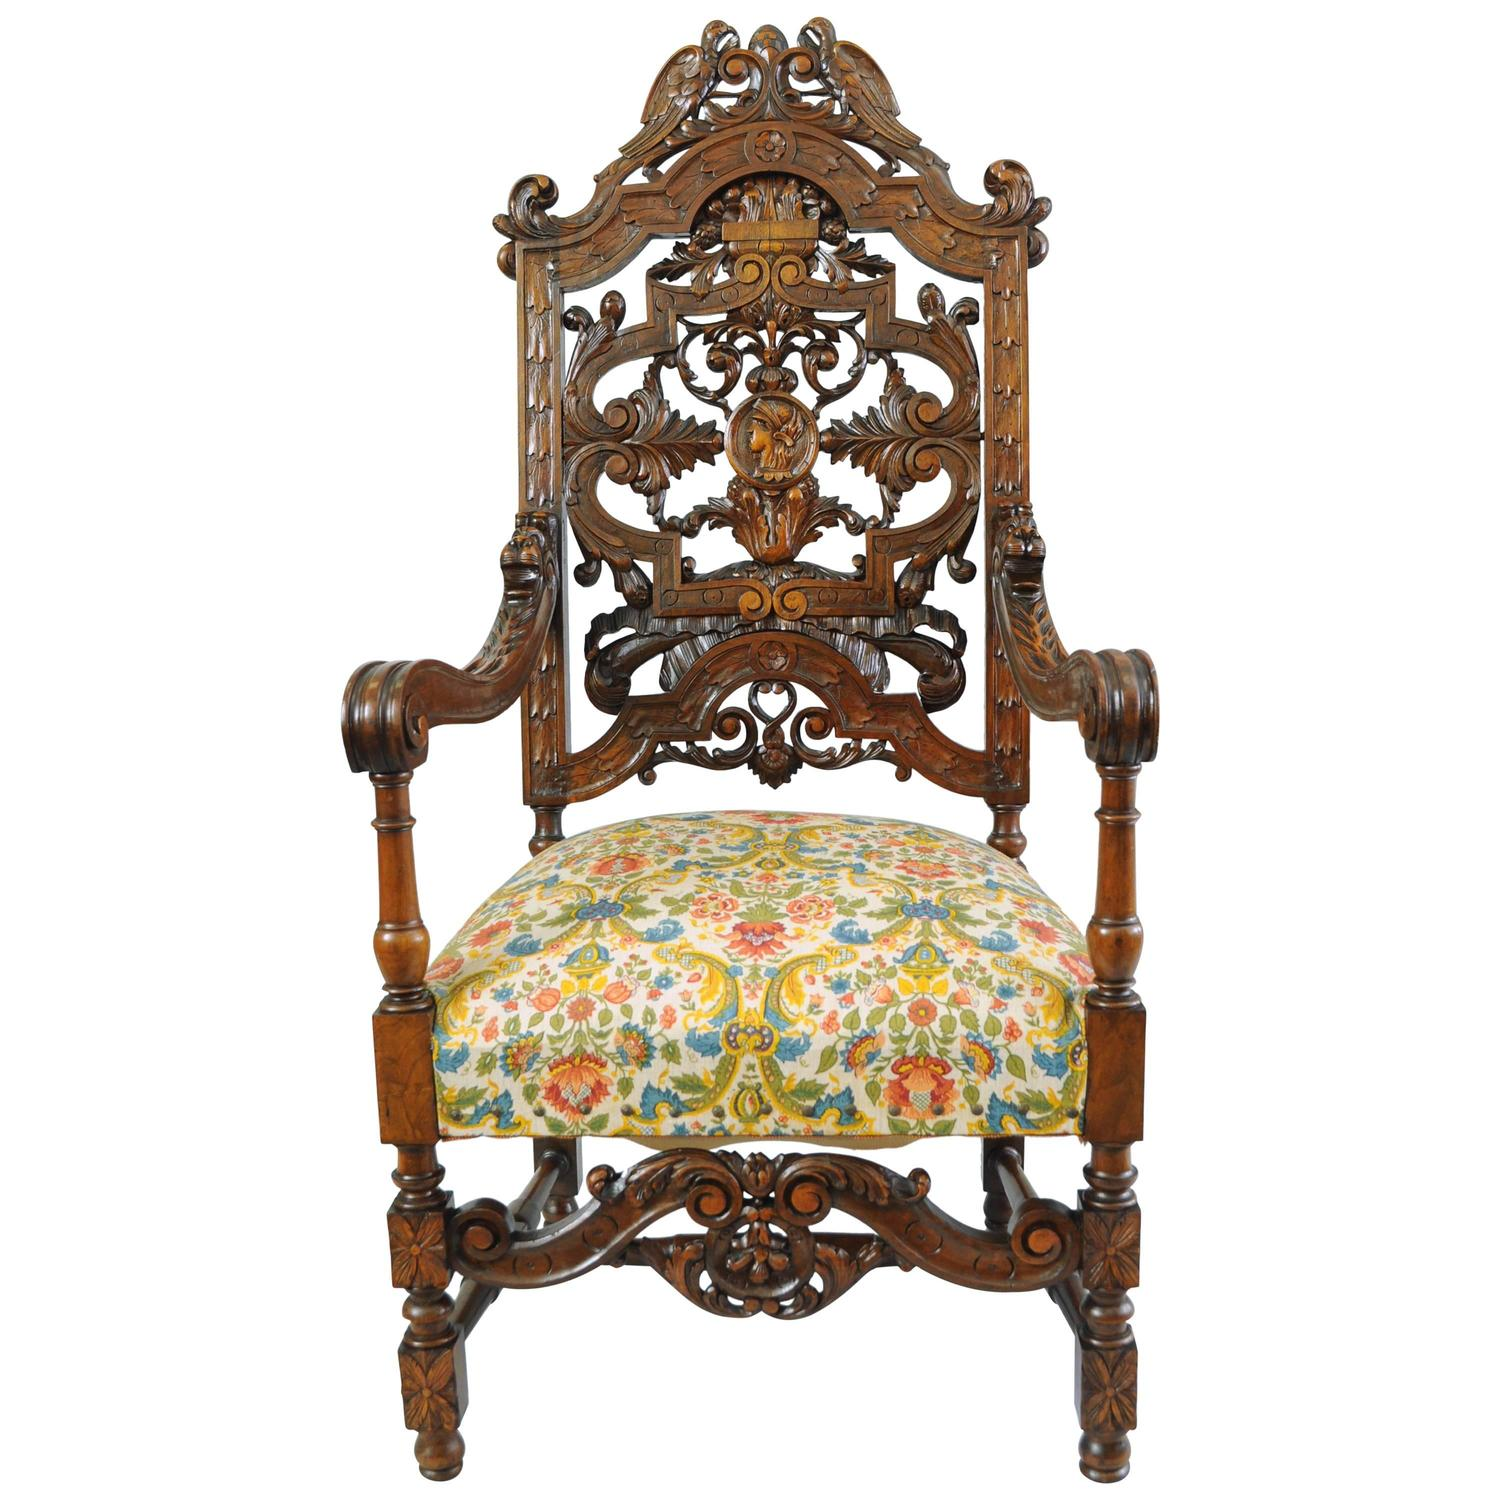 Ordinaire Tall Figural Bird And Lion Carved Walnut Renaissance Revival Throne Captain  Chair For Sale At 1stdibs